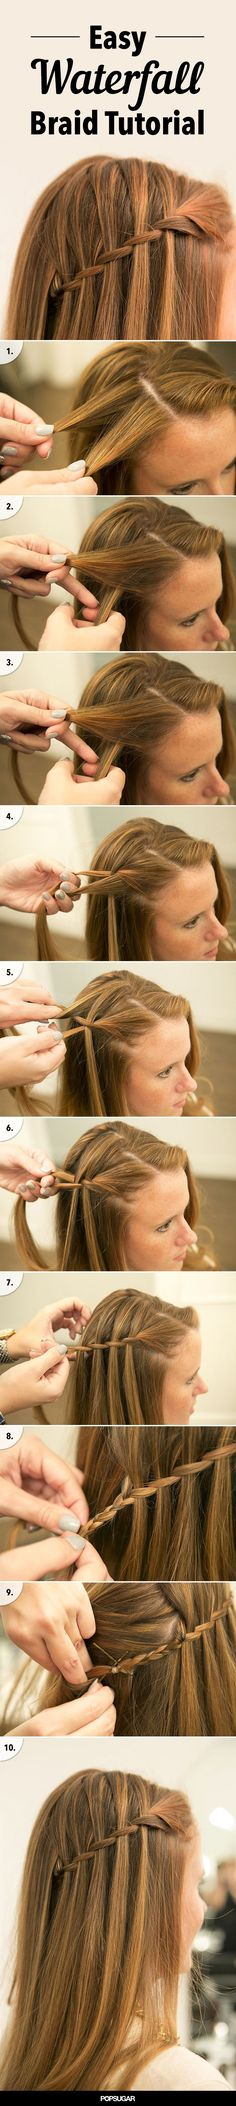 Water fall braid tutorial! DIY